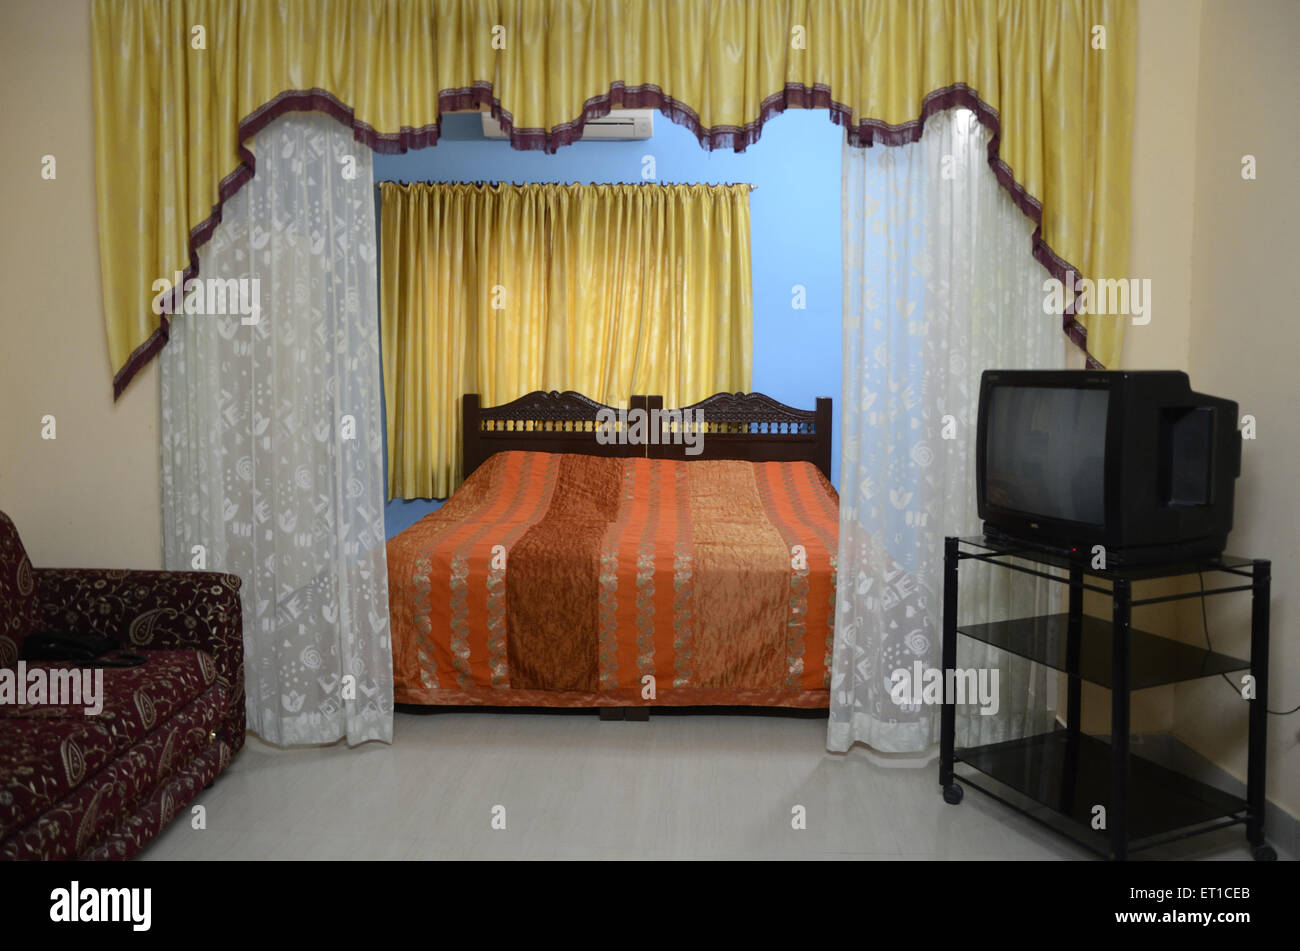 Well furnished room in hotel at Jaisalmer Rajasthan India - Stock Image